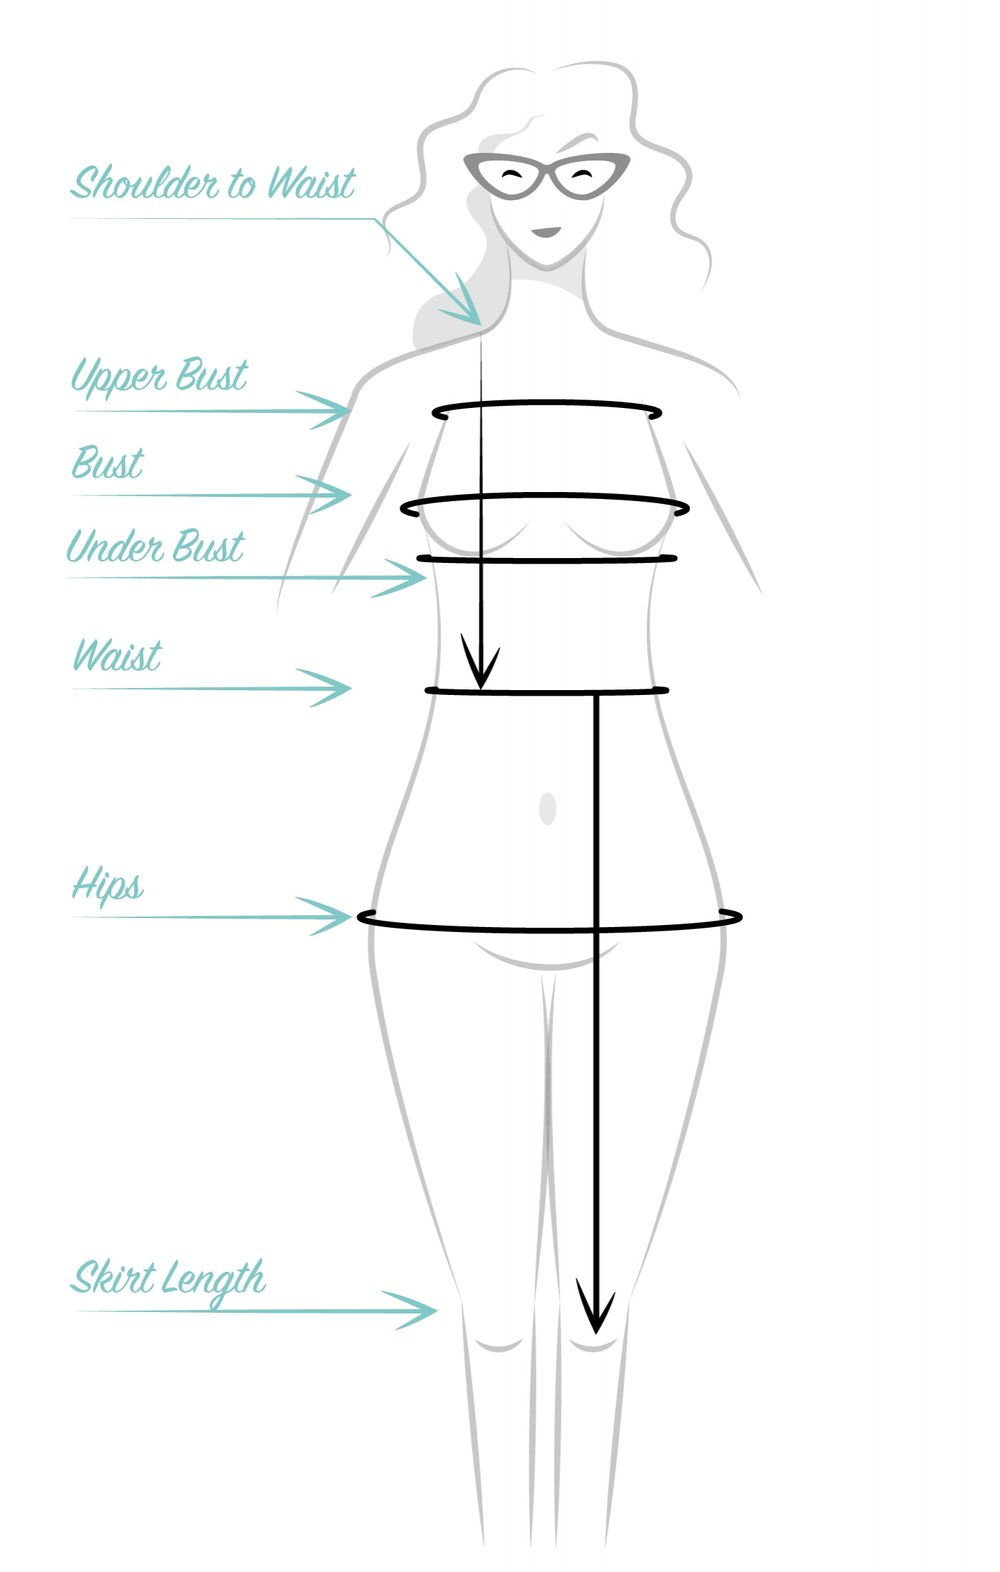 955ee2e62 Shoulder to Waist  Measure in a straight line from the middle top of the  shoulder down to the waist elastic